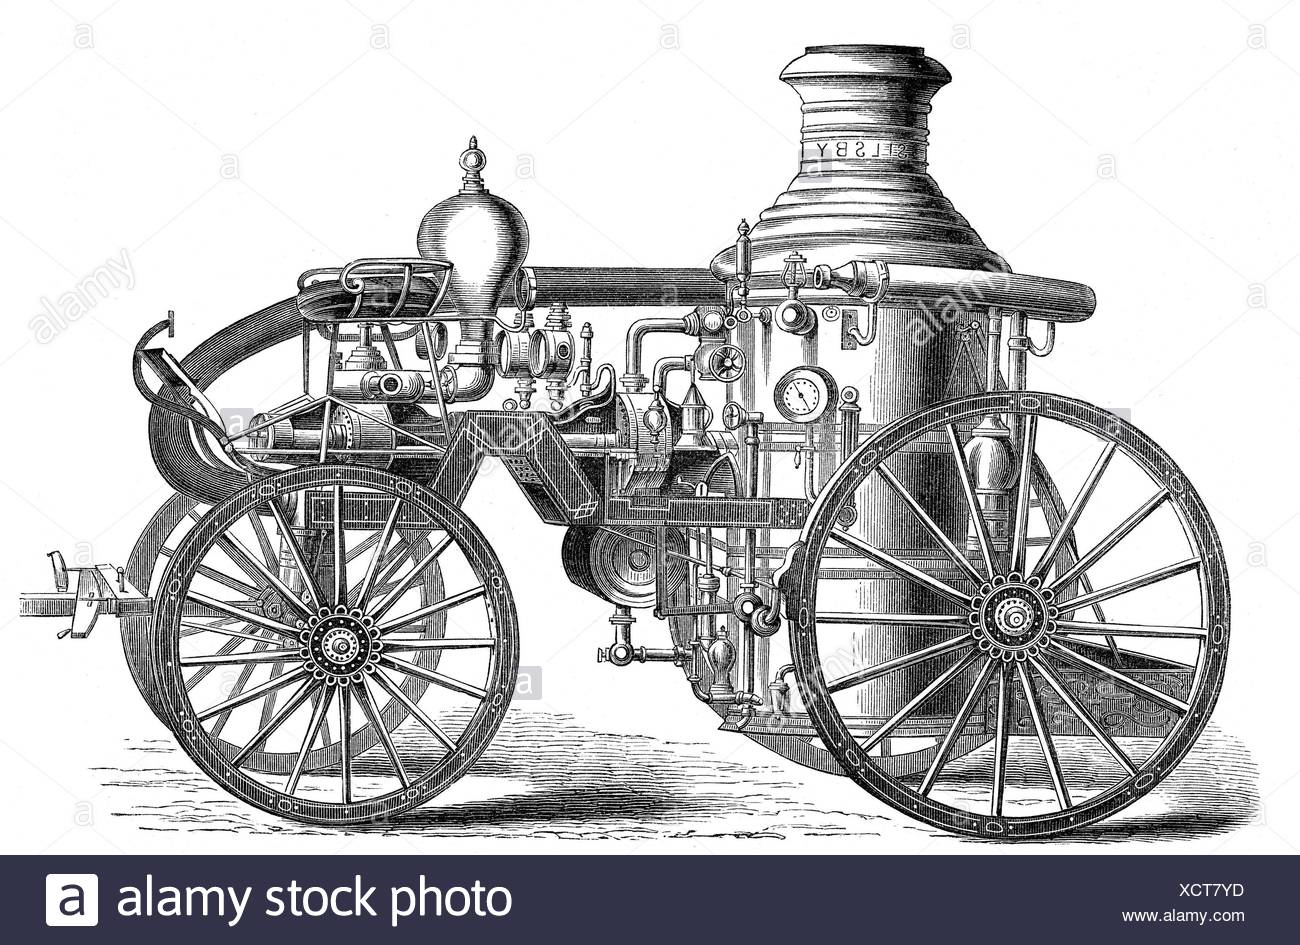 fire, fire service, equipment, steam fire engine of Selsby Company, England, wood engraving, 19th century, Additional-Rights-Clearences-NA - Stock Image